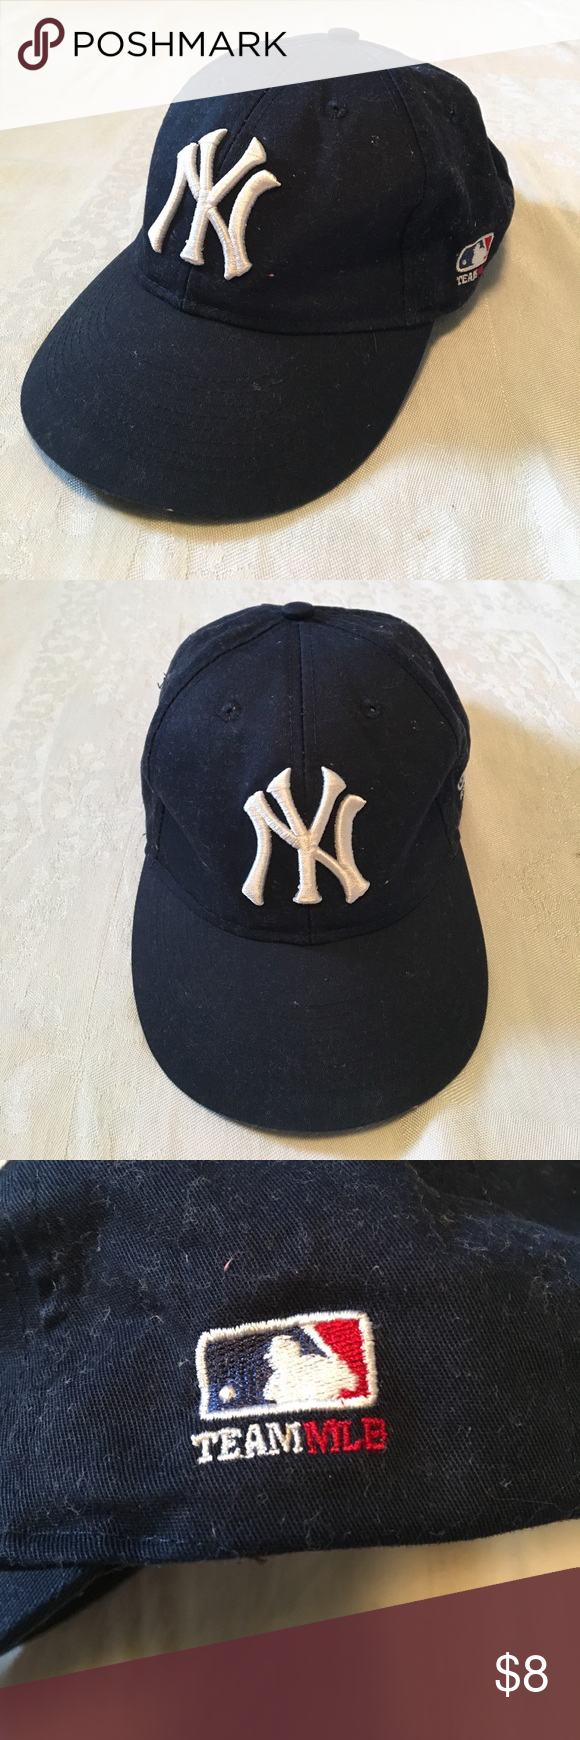 5c36bc88eebef Youth Yankee Hat Youth Yankee baseball Hat with Velcro adjustable closure.  Name written on inside